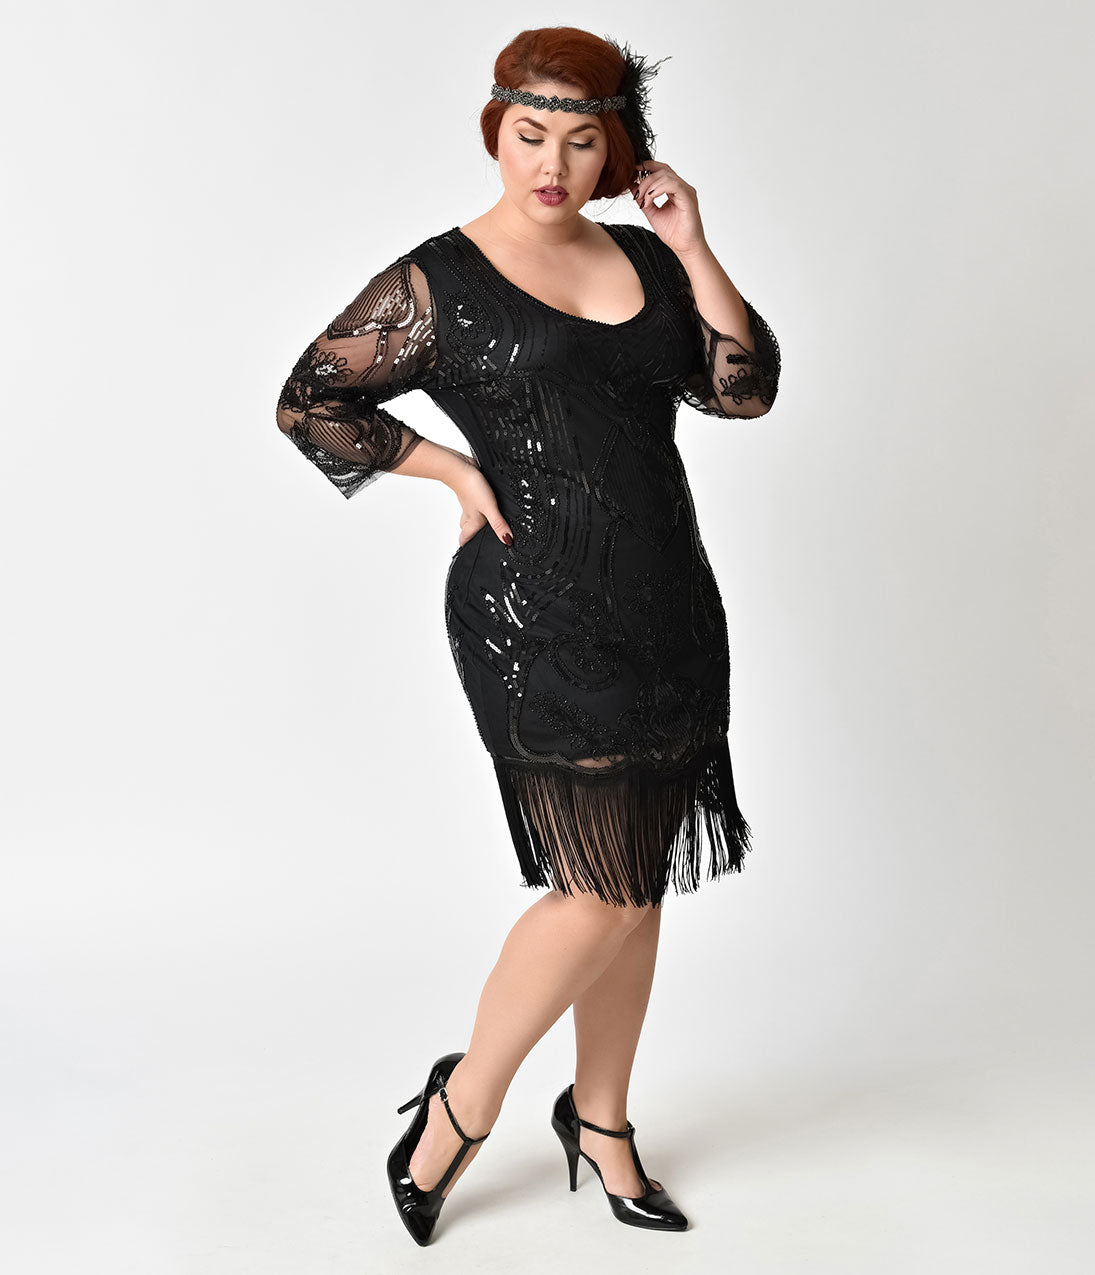 Black Flapper Dresses, 1920s Black Dresses Unique Vintage Plus Size Black Beaded  Sequin Margaux Sleeved Fringe Flapper Dress $110.00 AT vintagedancer.com